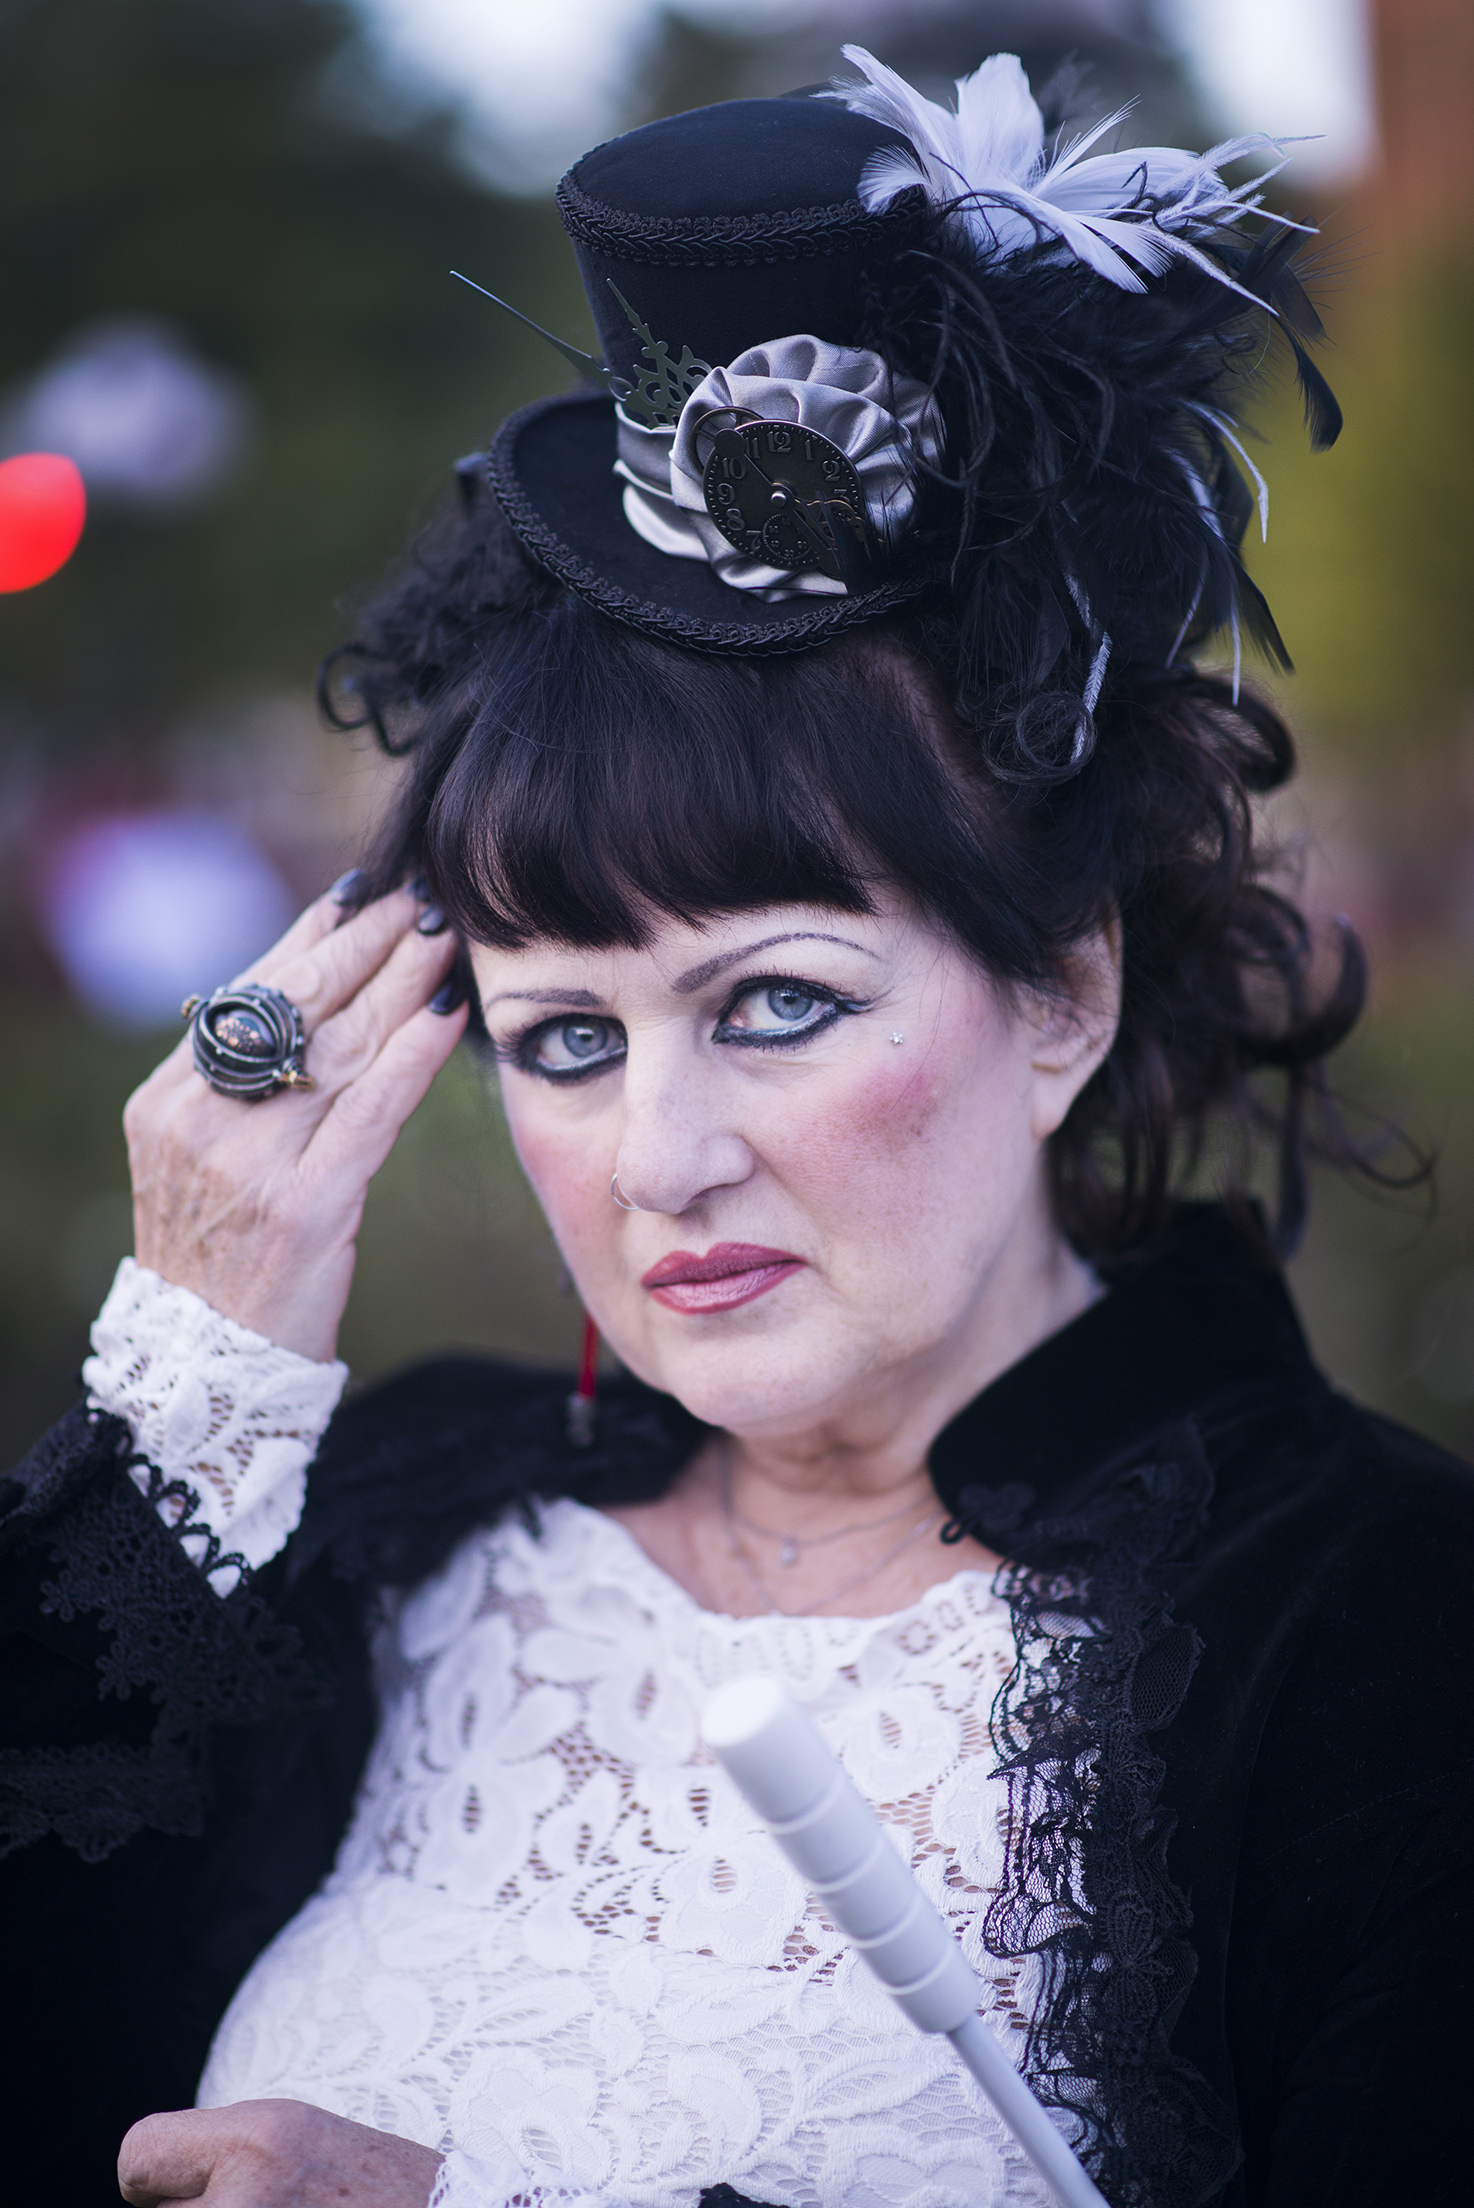 Penni AlZayer lives in a Victorian style home in McArthur, Ohio.  She fell in love with the steampunk style after finding images online.  Here, she poses for a portrait at Final Fridays on the Square in Nelsonville, Ohio on Friday, August 29, 2014.